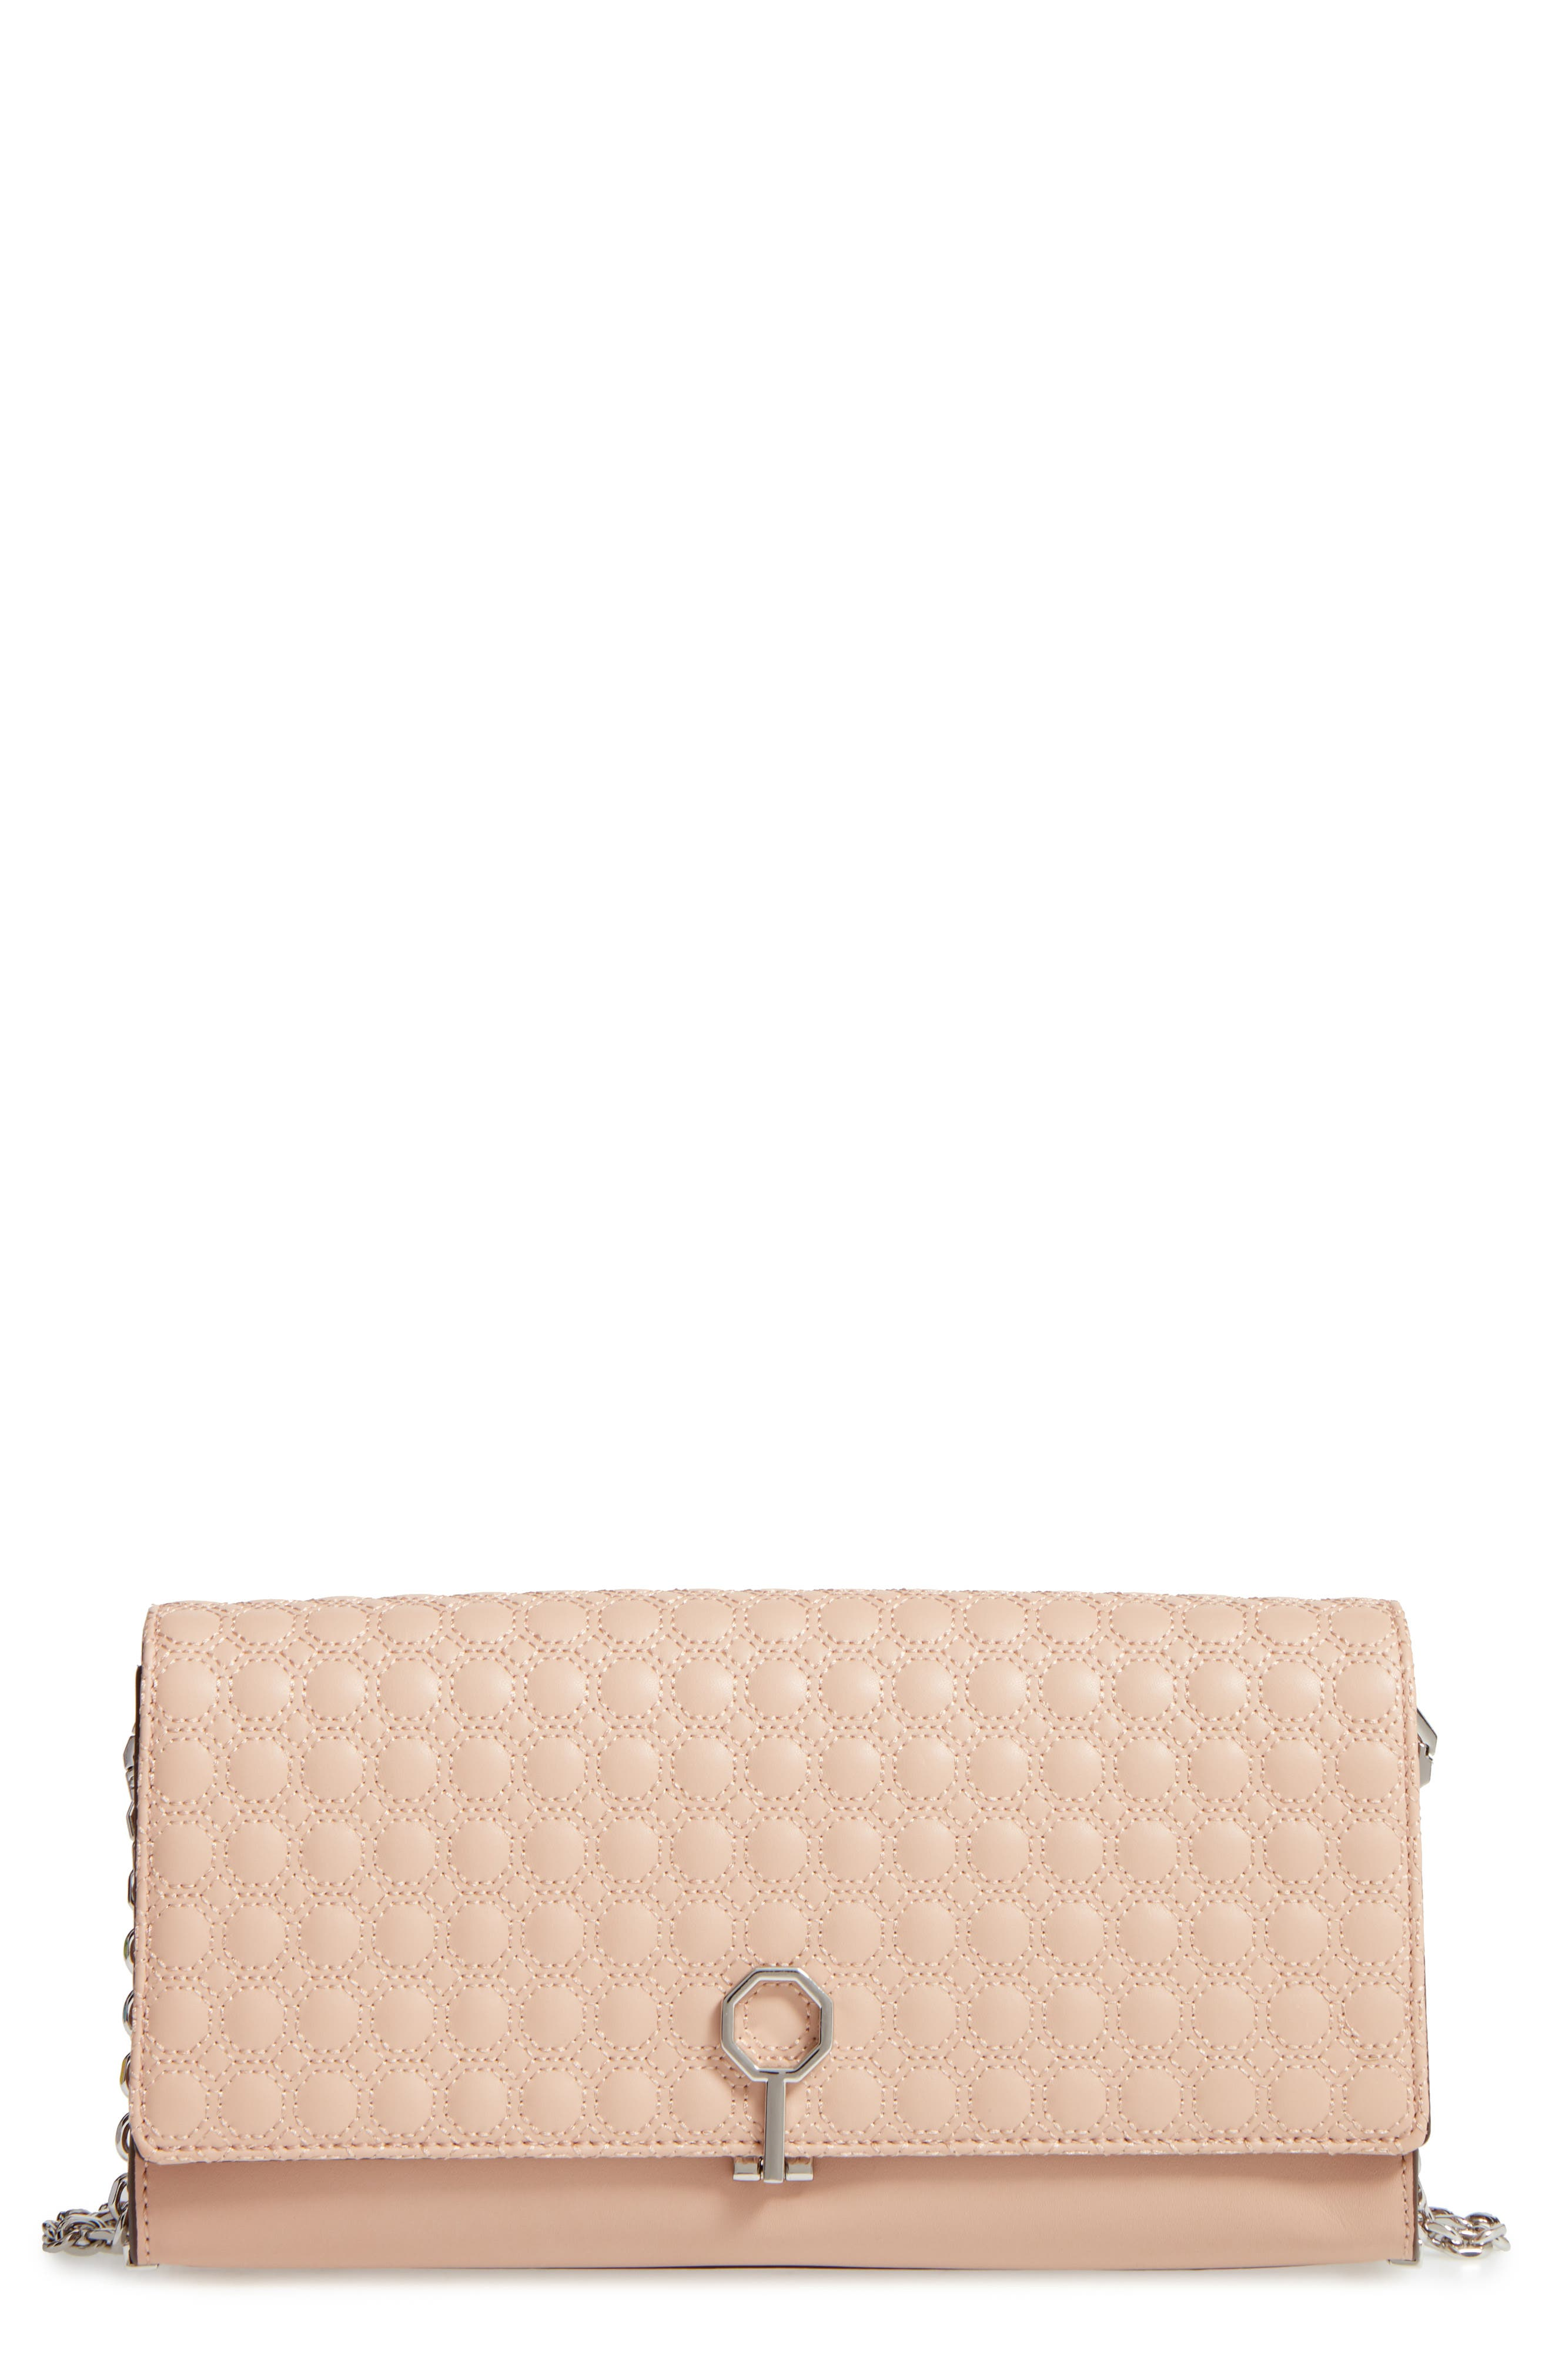 Louise et Cie 'Yvet' Leather Flap Clutch (Nordstrom Exclusive)